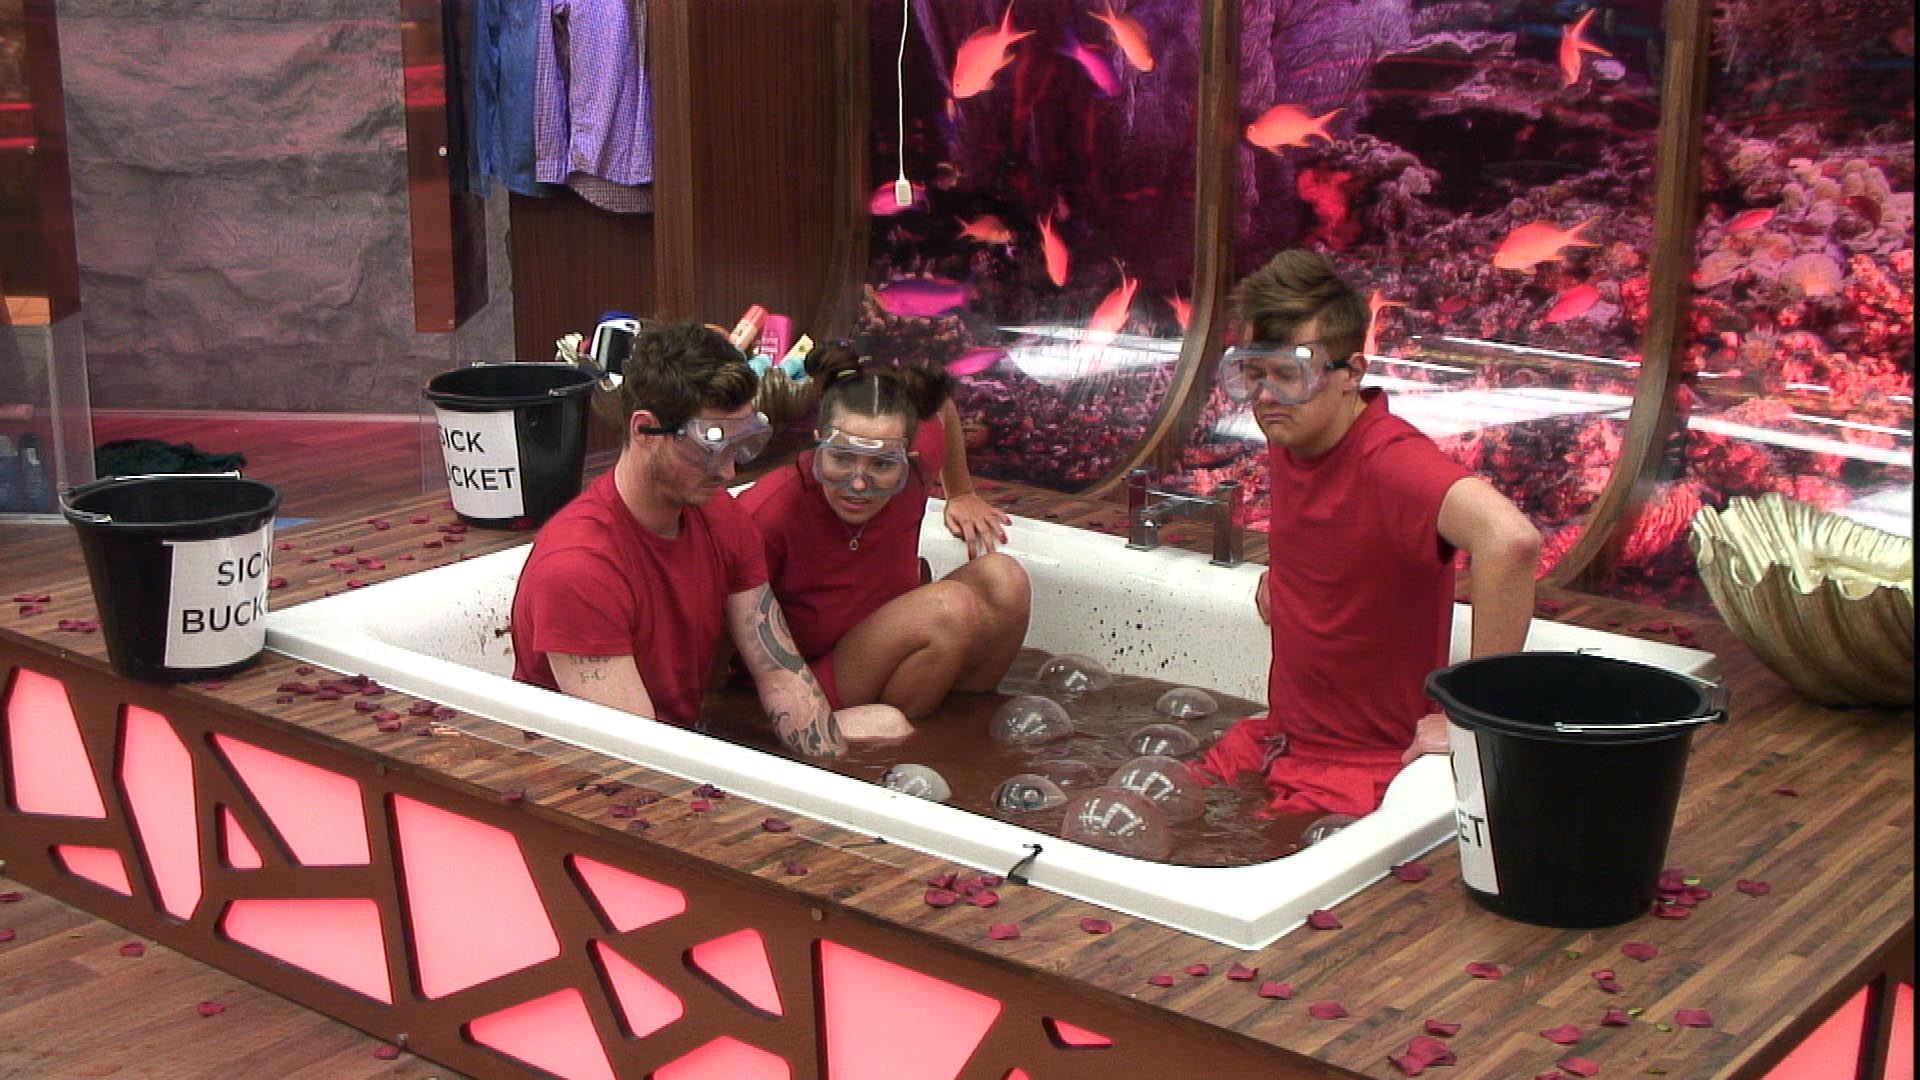 Day 30: Housemates take part in first day of The Zone task